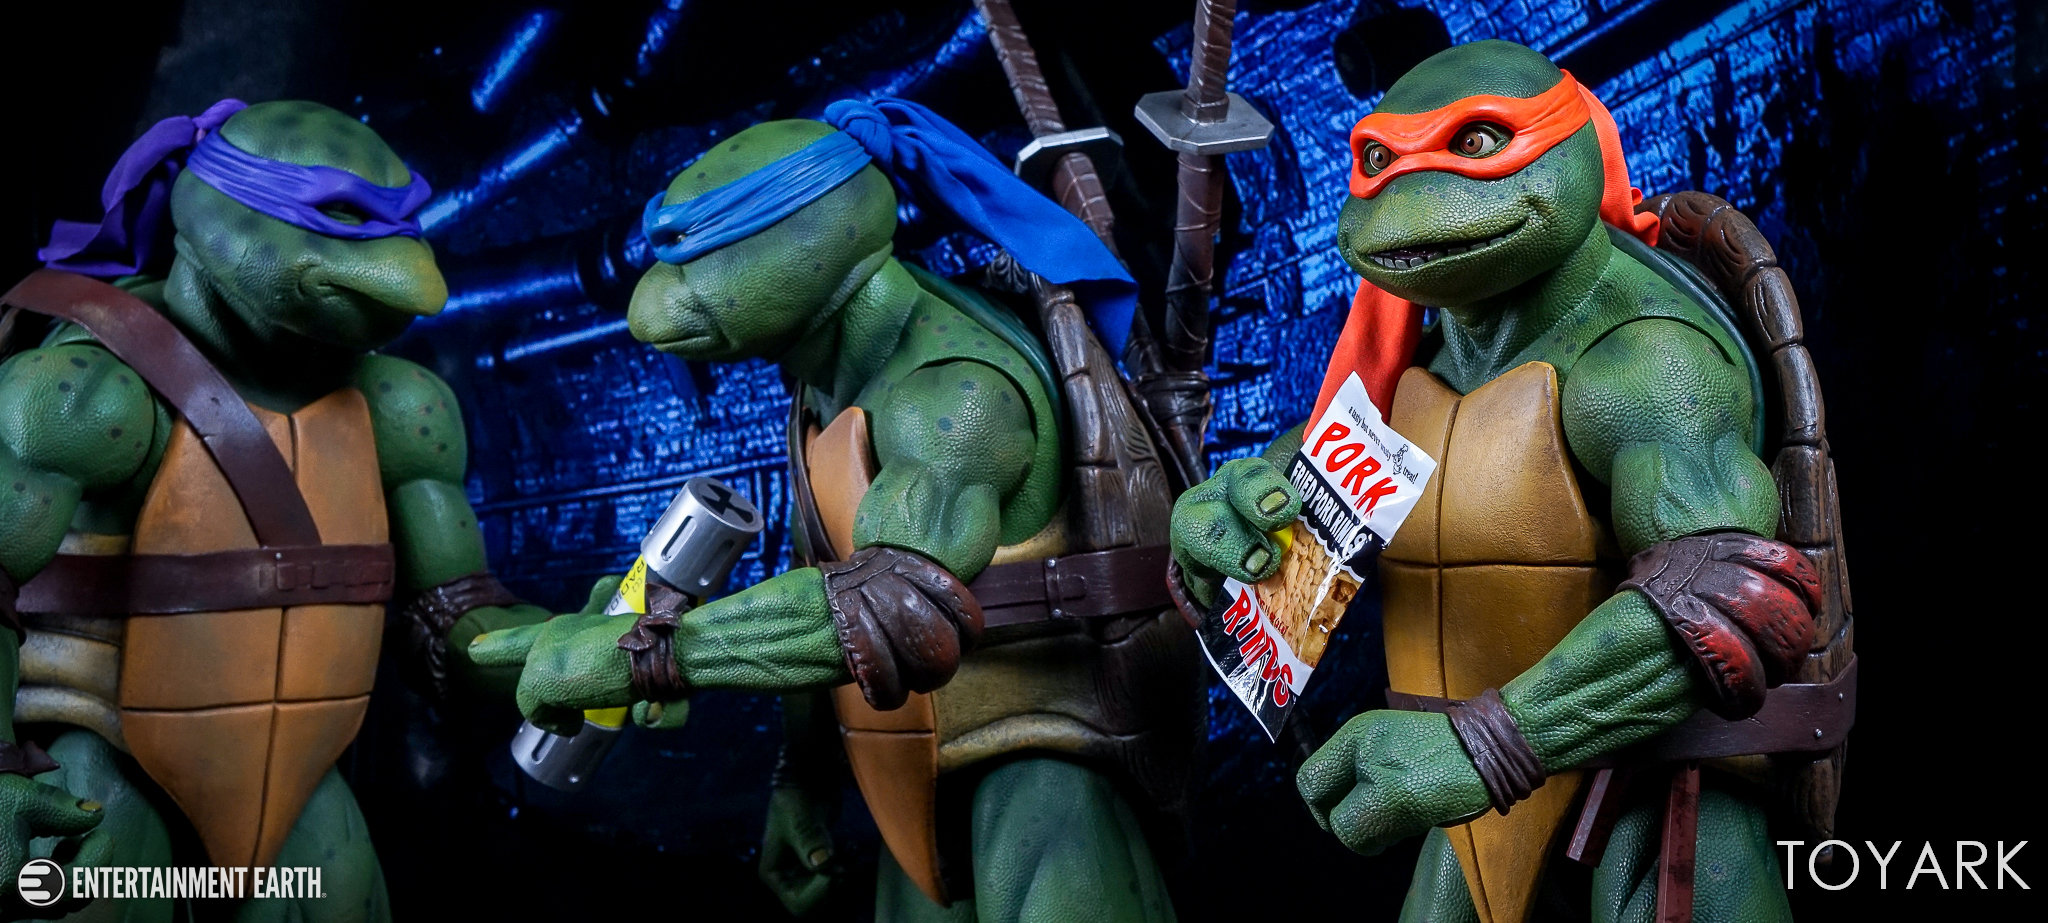 http://news.toyark.com/wp-content/uploads/sites/4/2017/10/NECA-Quarter-Scale-TMNT-Michelangelo-029.jpg